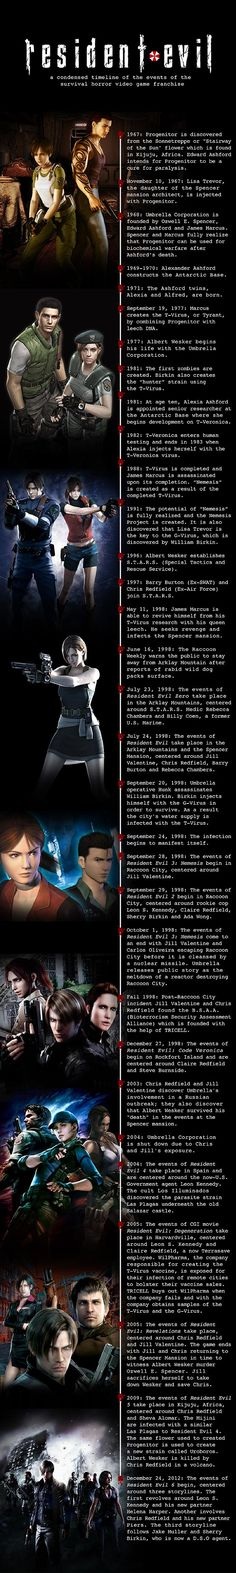 For the uninformed about resident evil